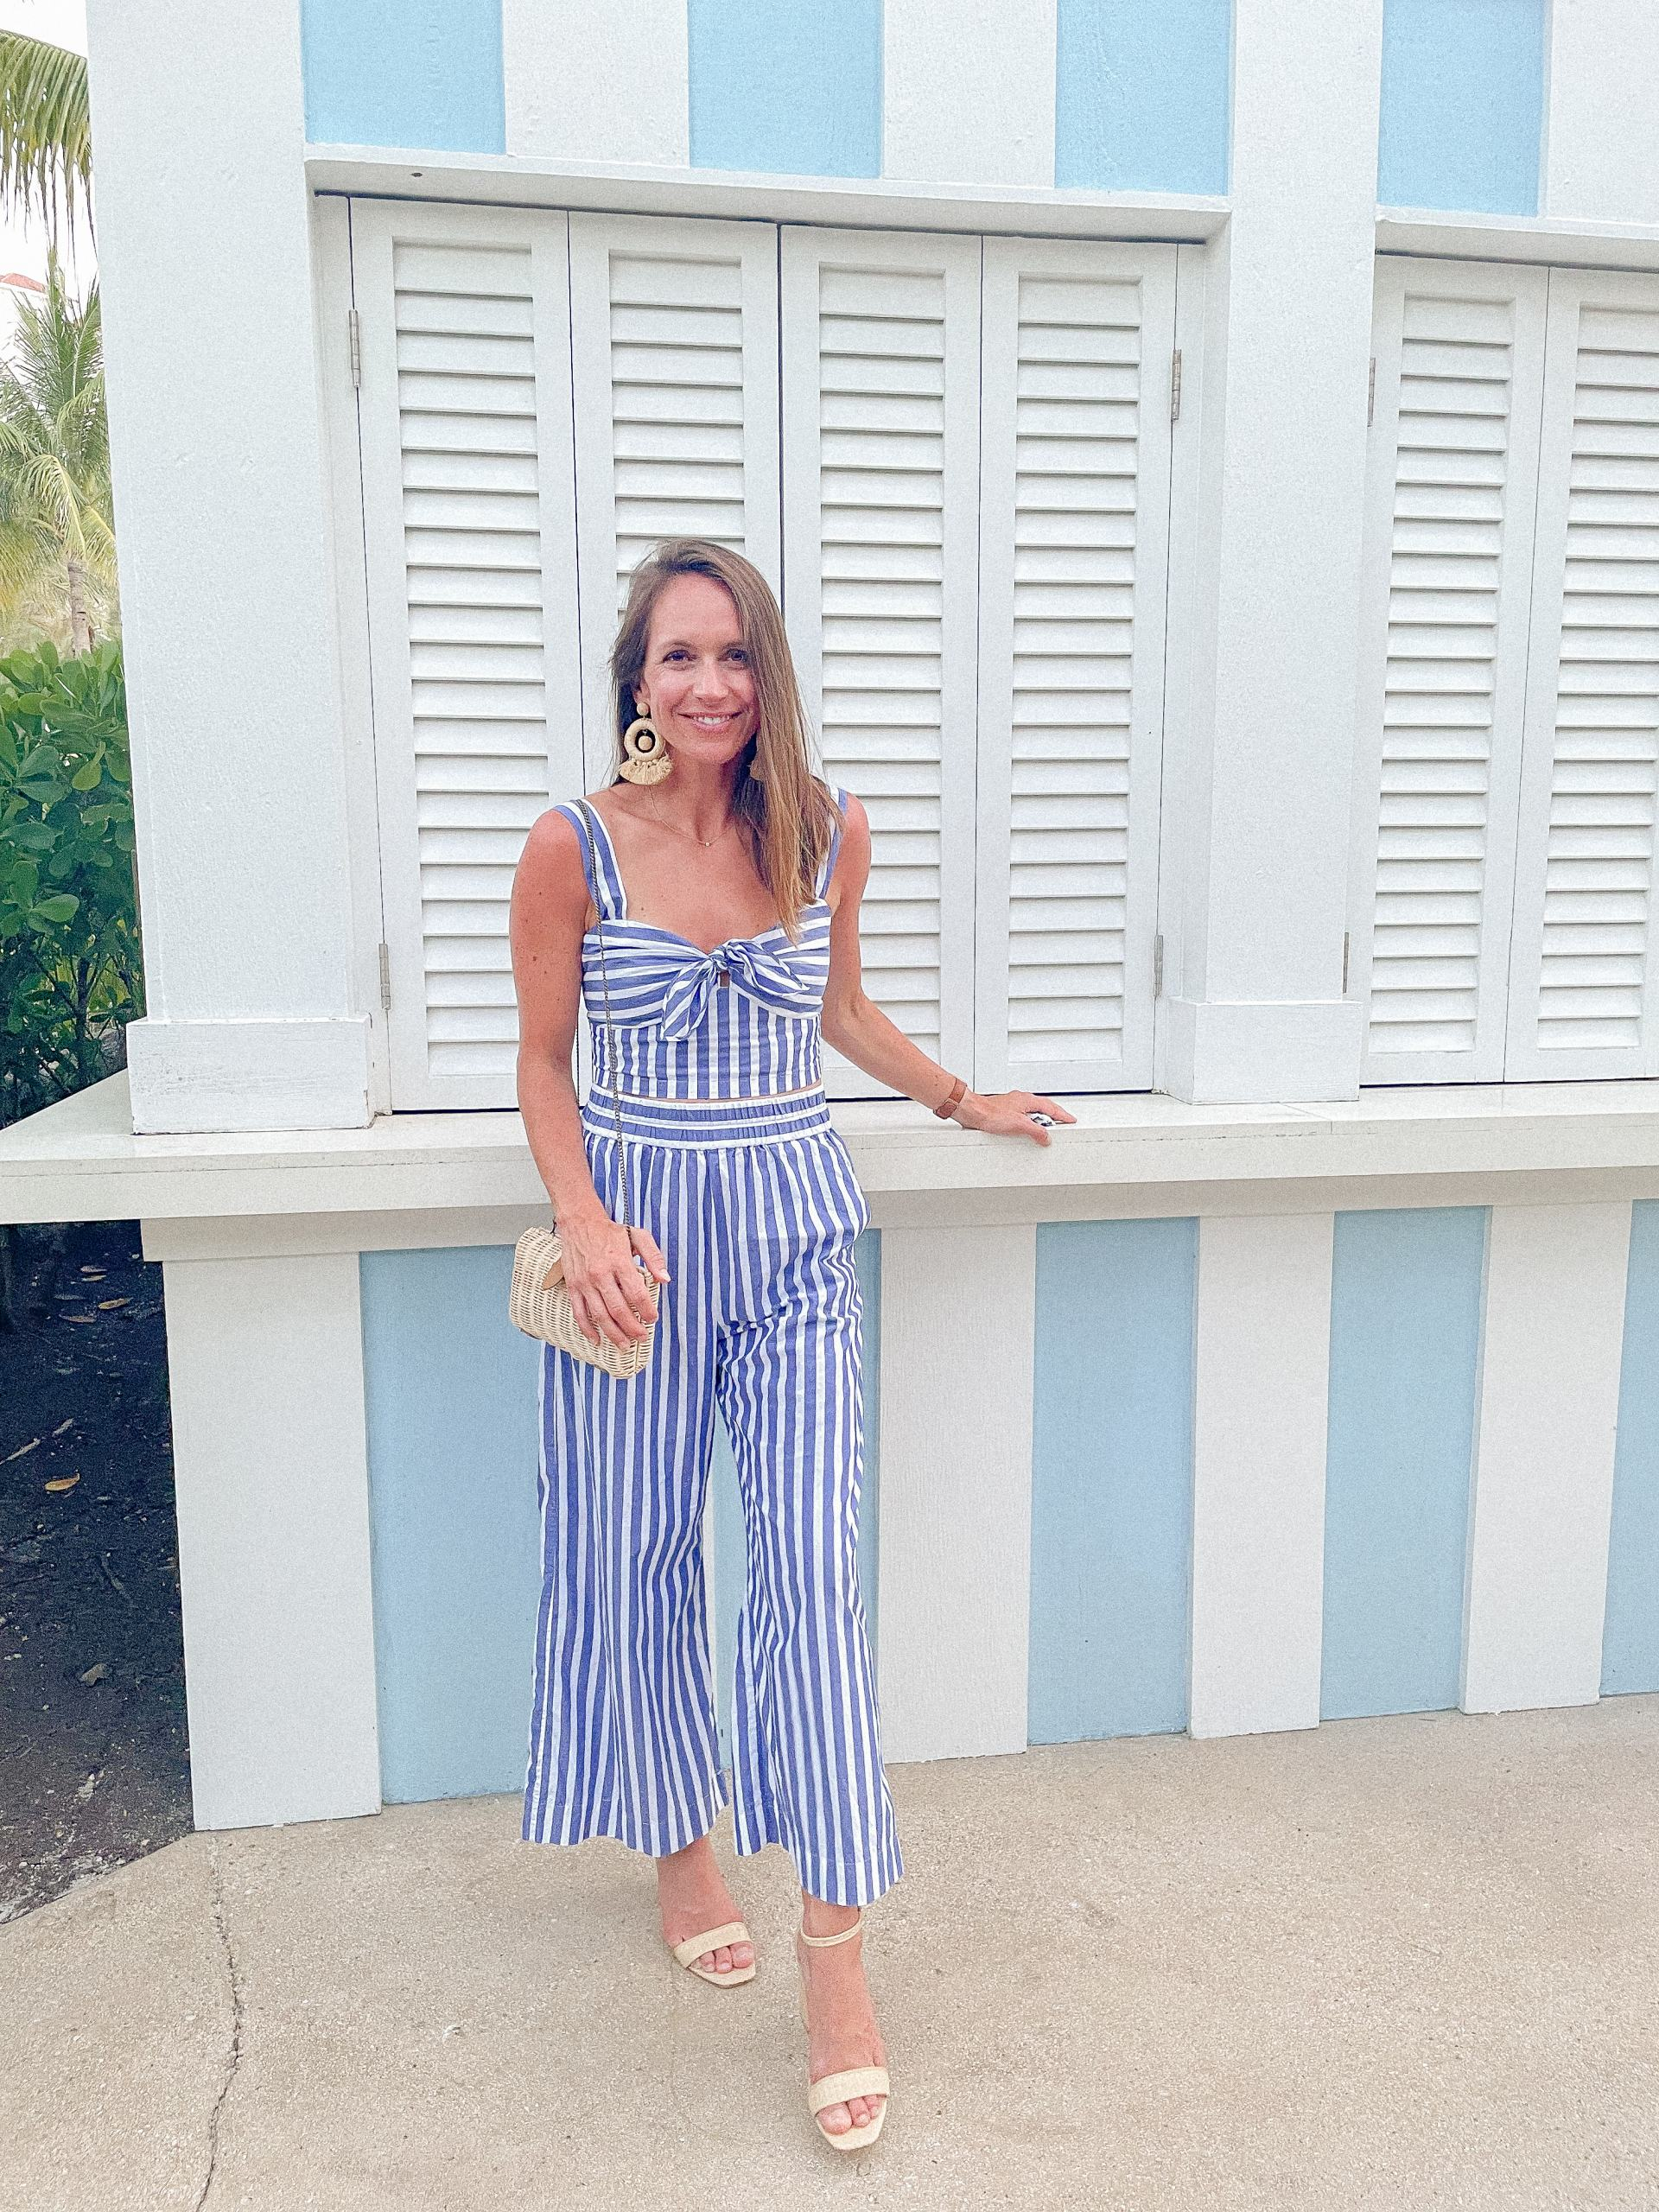 classic style - resort wear - striped 2 piece outfit - j. crew awning striped wide leg pants and tie front crop top - j mclaughlin esme heels